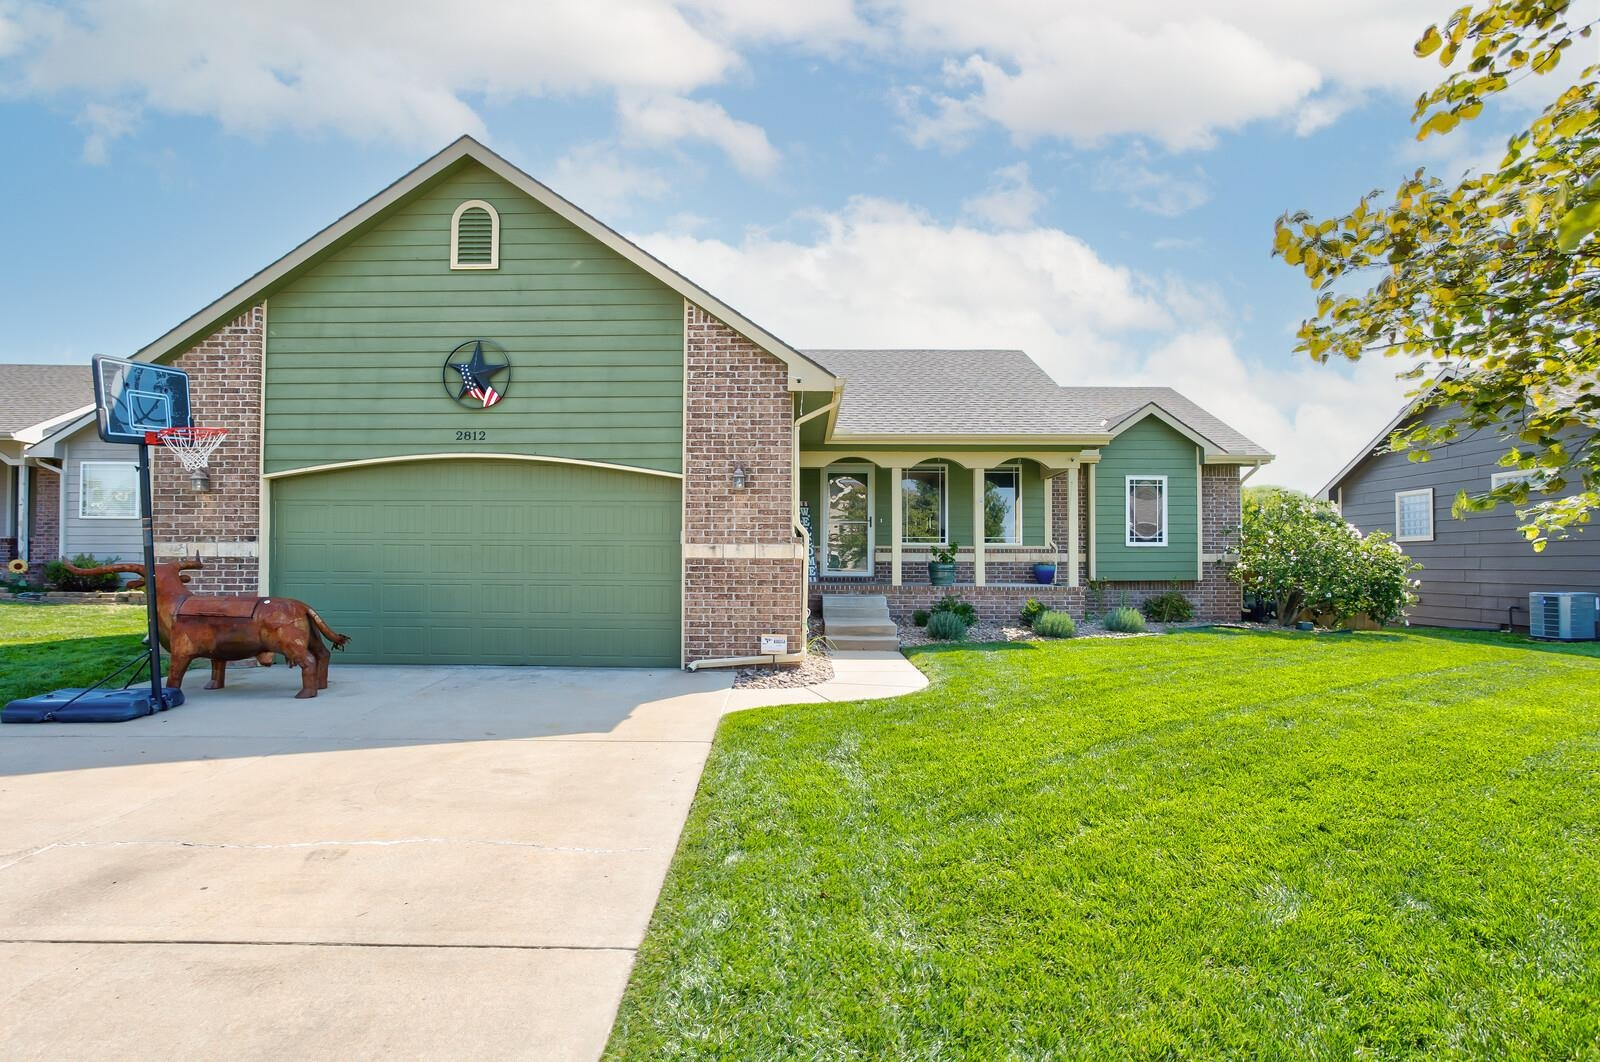 Wow, check out this amazing Derby home! 4 bedrooms (with a 5th option), 3 baths, 2400+ sq ft with an